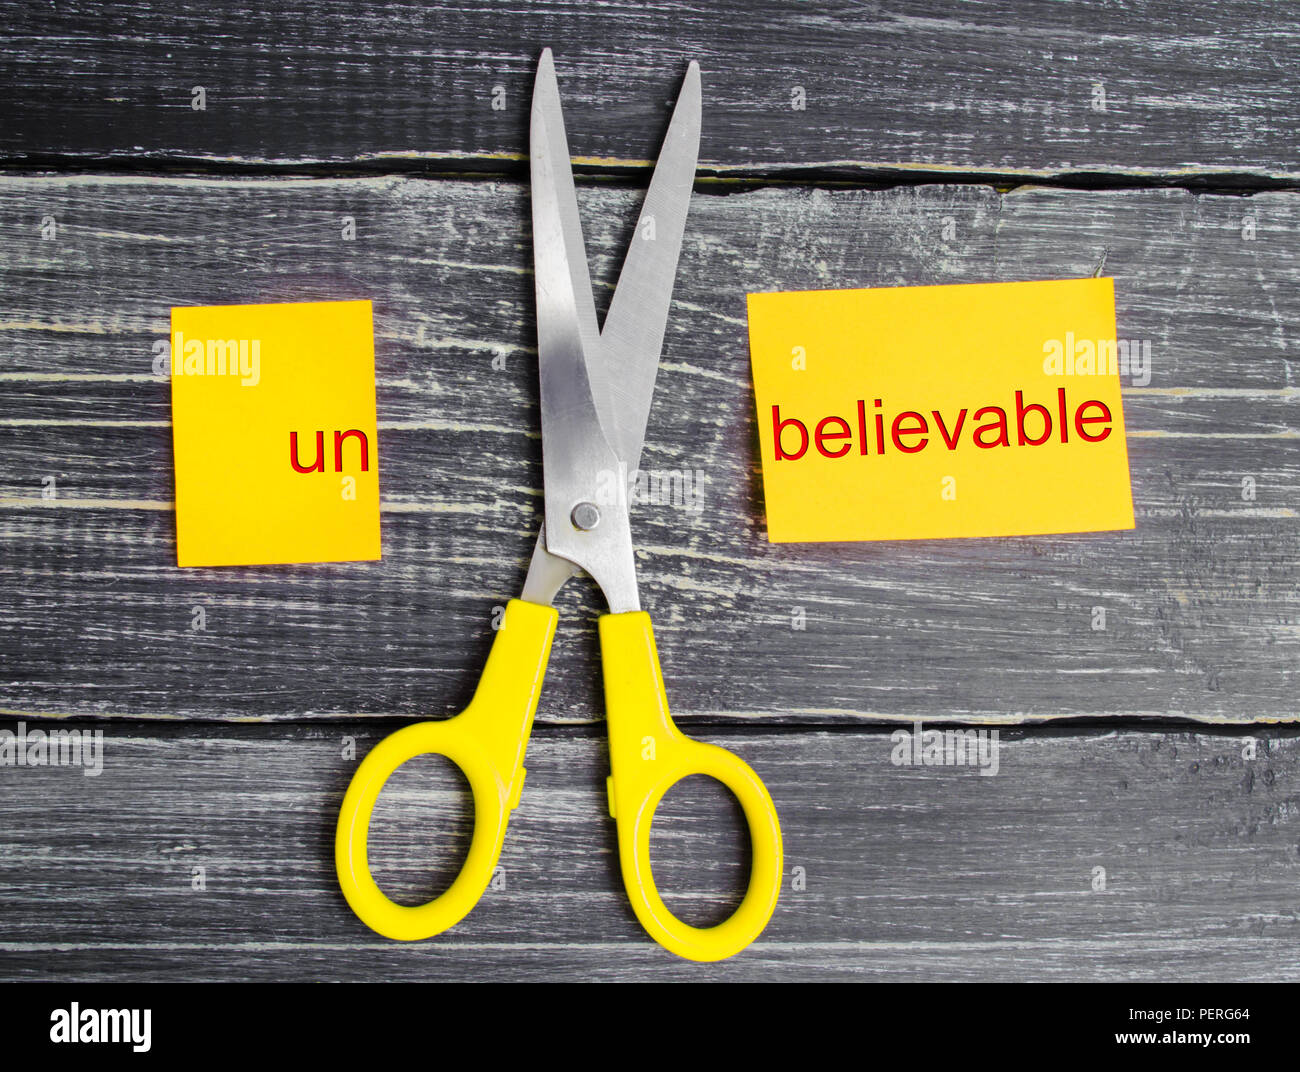 scissors cut the word unbelievable. concept believable. cuts the word 'un. 'I can, goal achievement, potential, overcoming - Stock Image